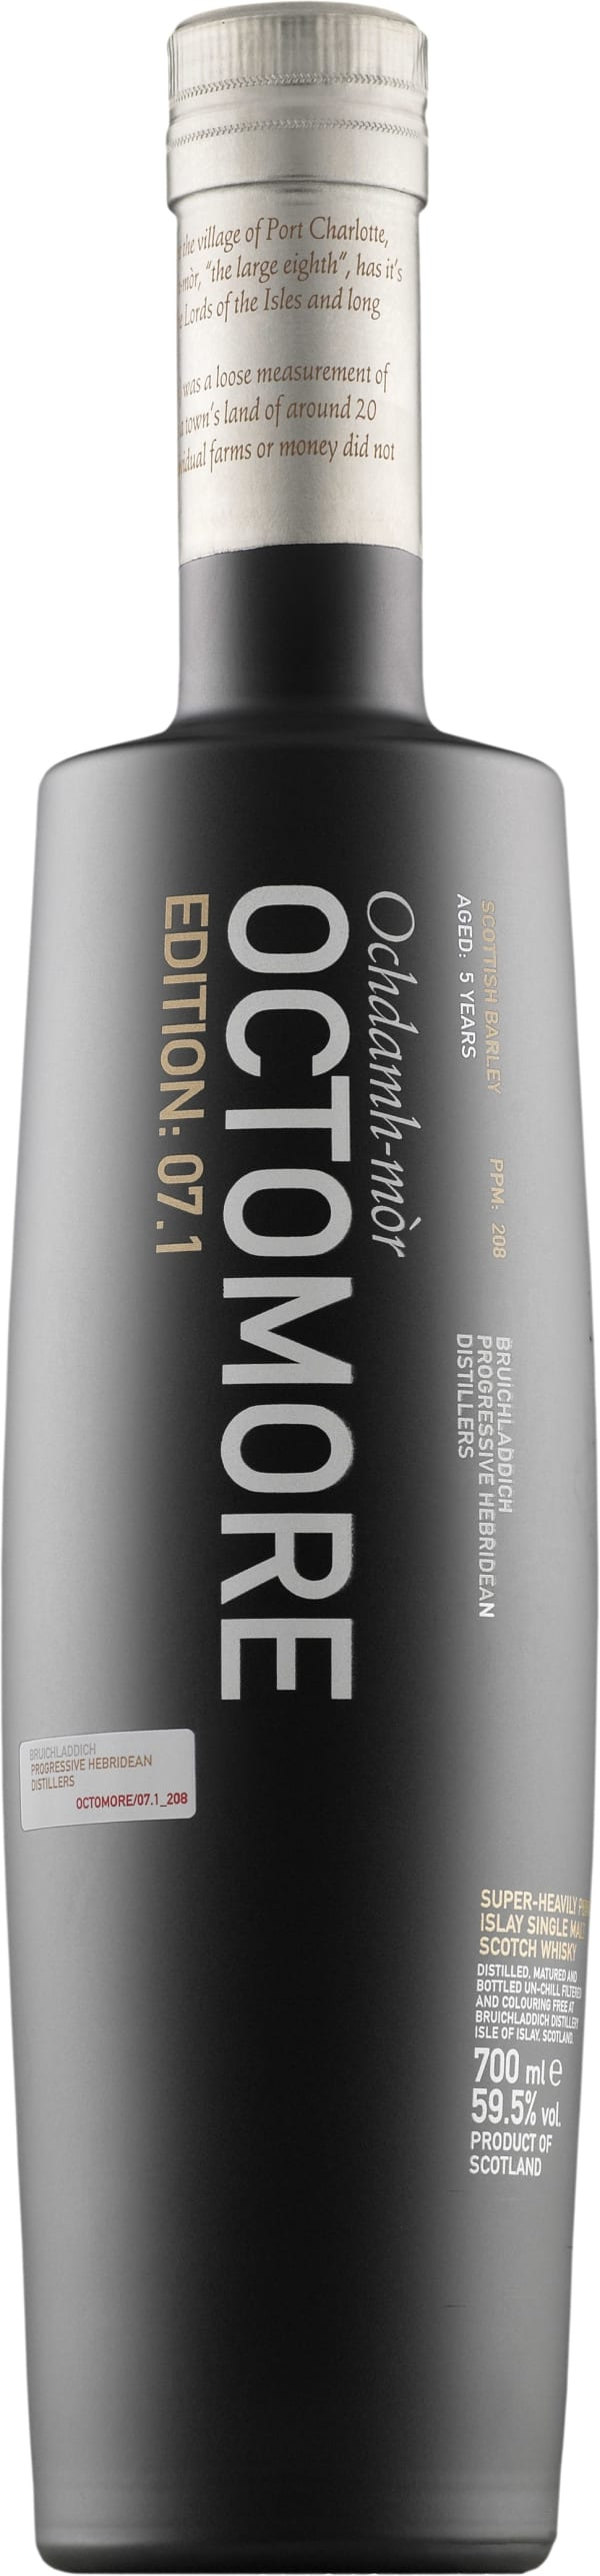 Octomore 07.1 Single Malt